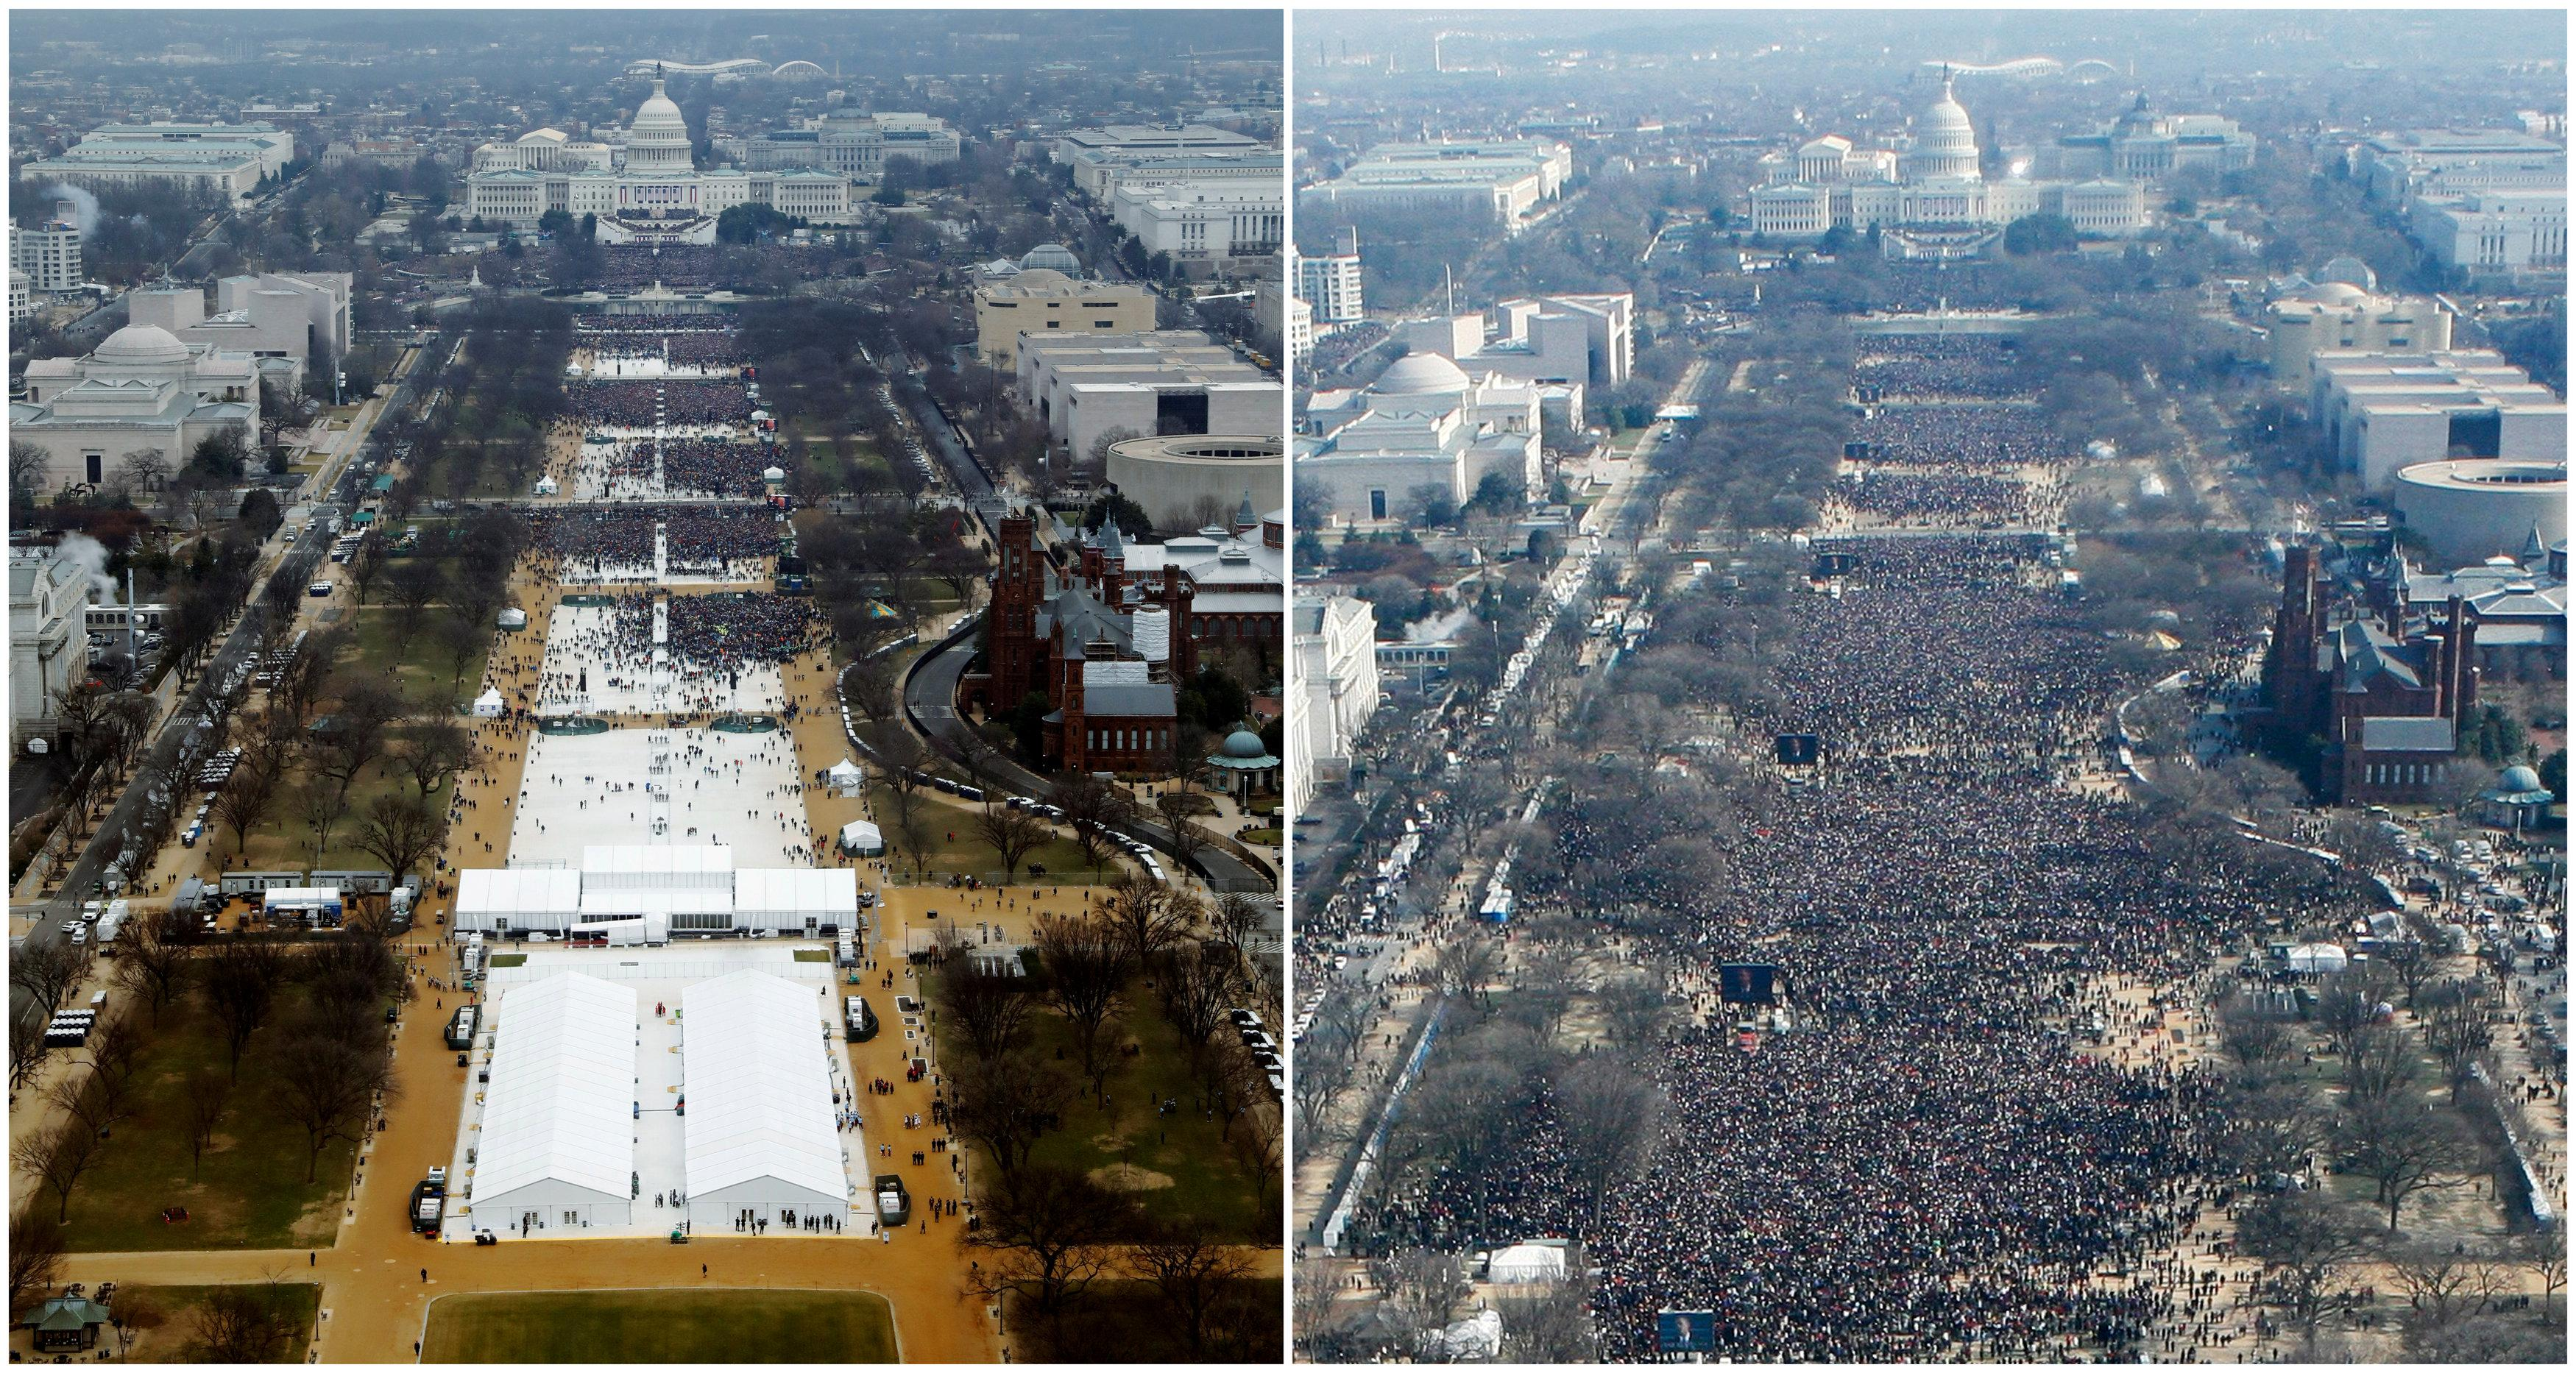 Inauguration crowd photos